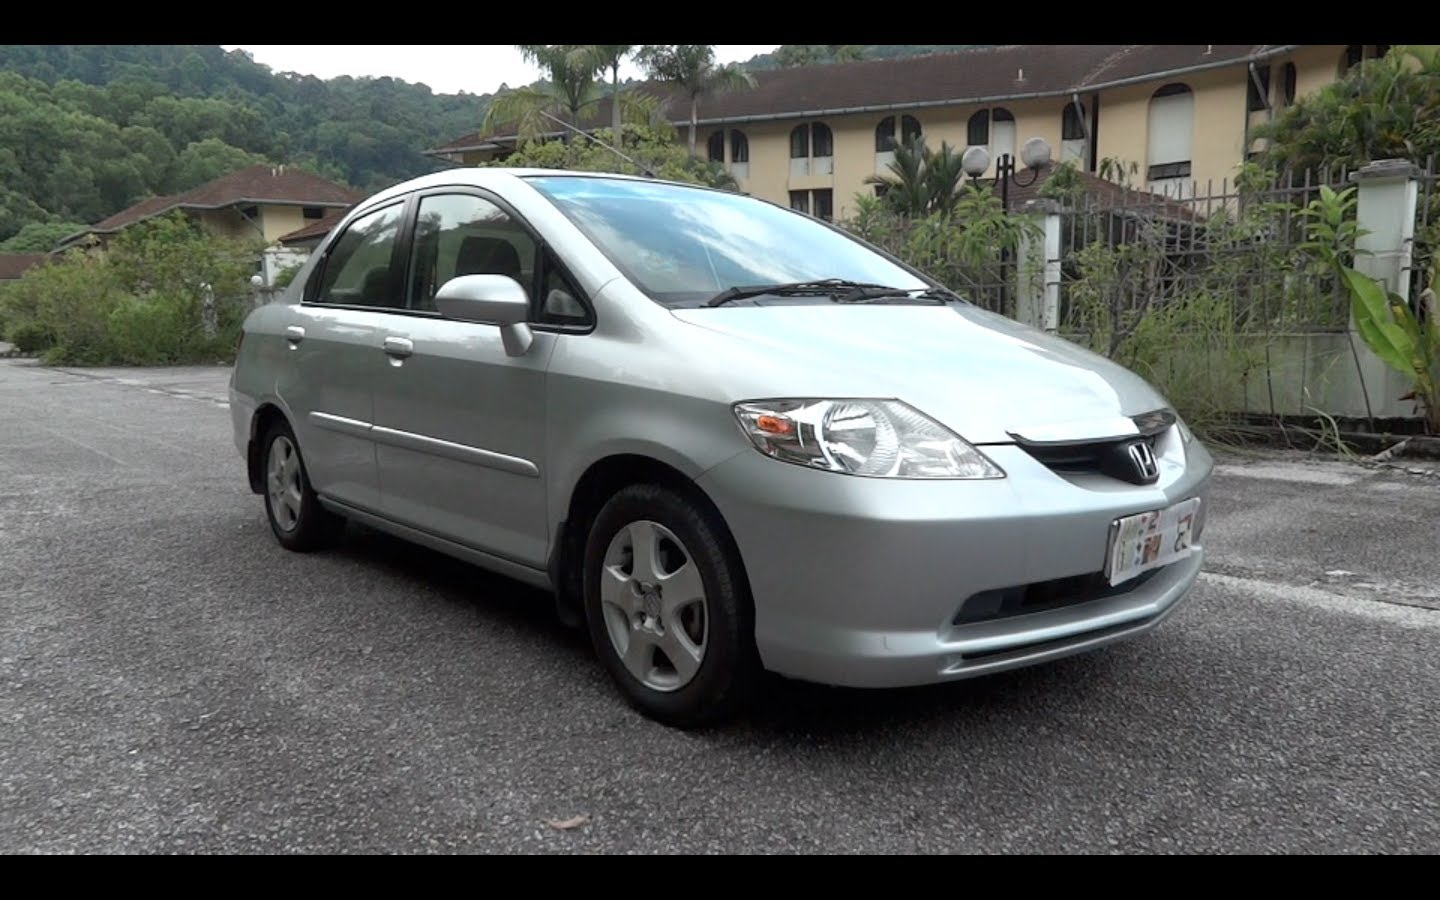 Honda City 2004: Review, Amazing Pictures and Images - Look at the car